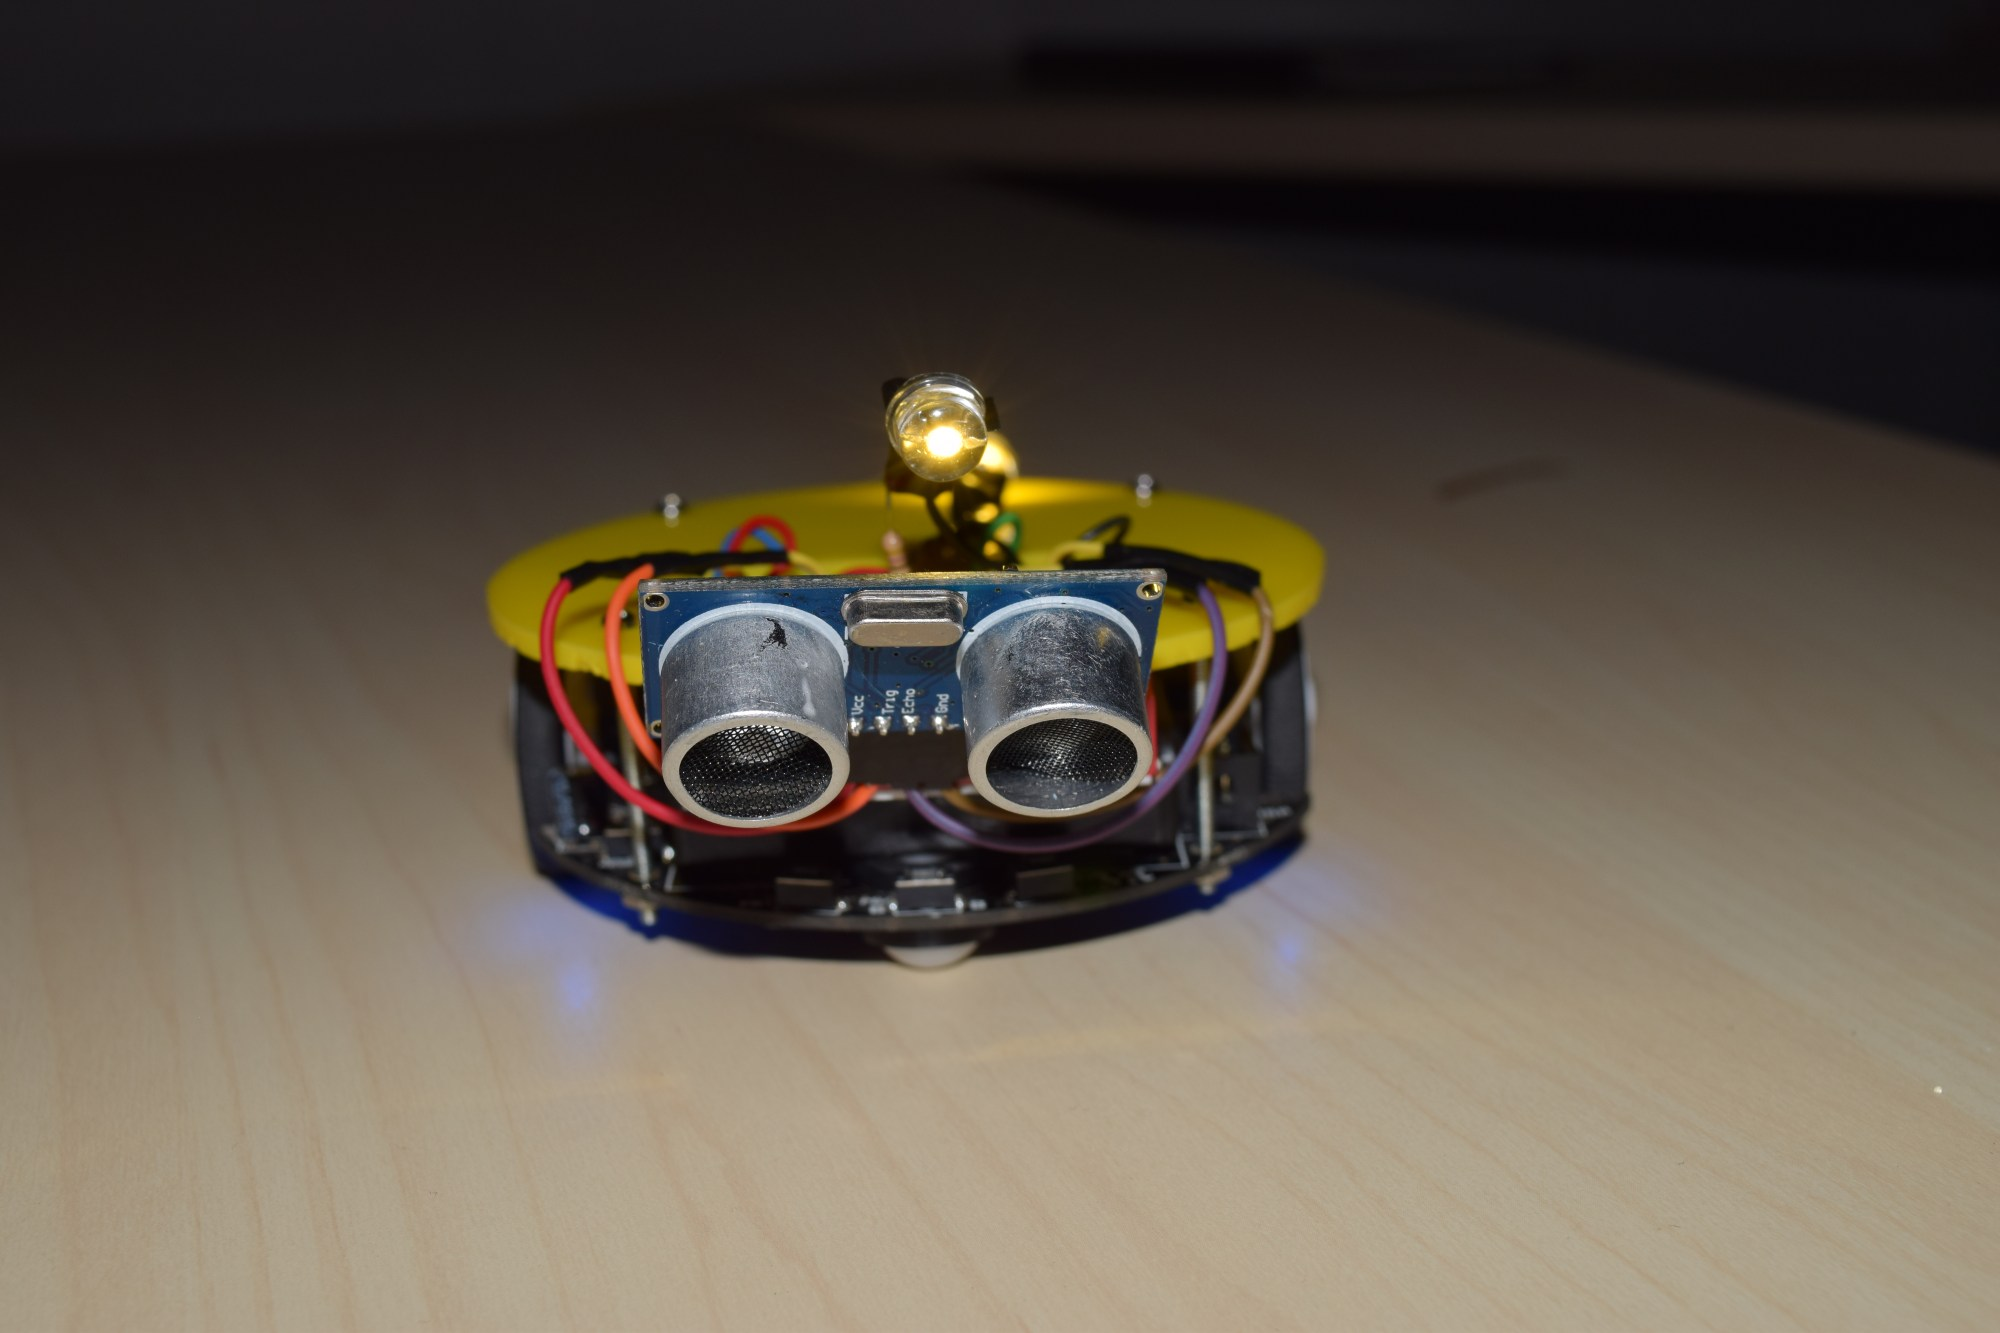 hight resolution of mobile robot stalker prey f intro to physical computing for those interested in creating their own